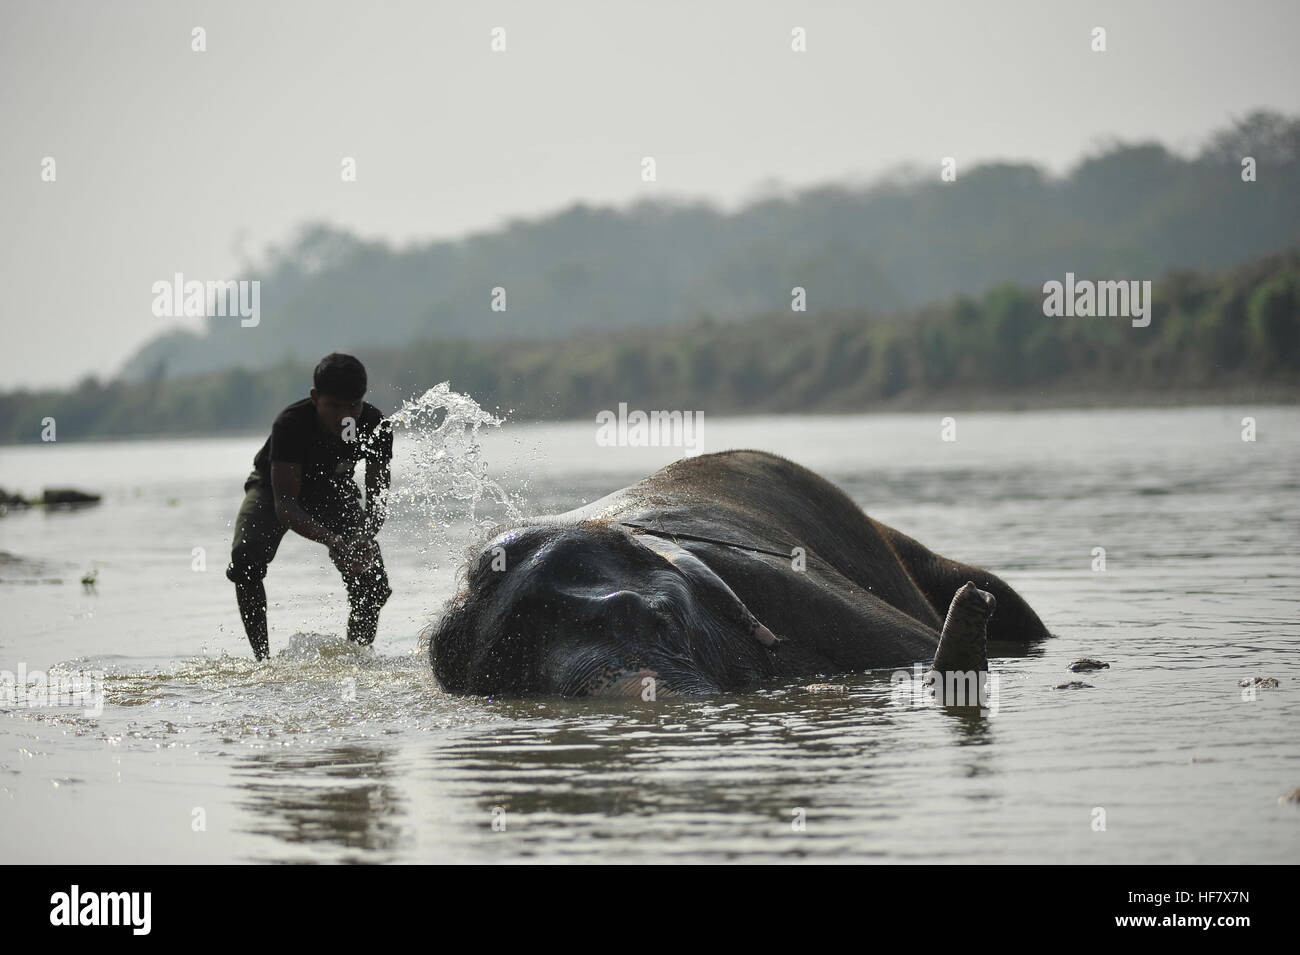 Kathmandu, Nepal. 27th Dec, 2016. A mahout baths his elephant 'LAXMI KALI' at Rapti River before participating - Stock Image